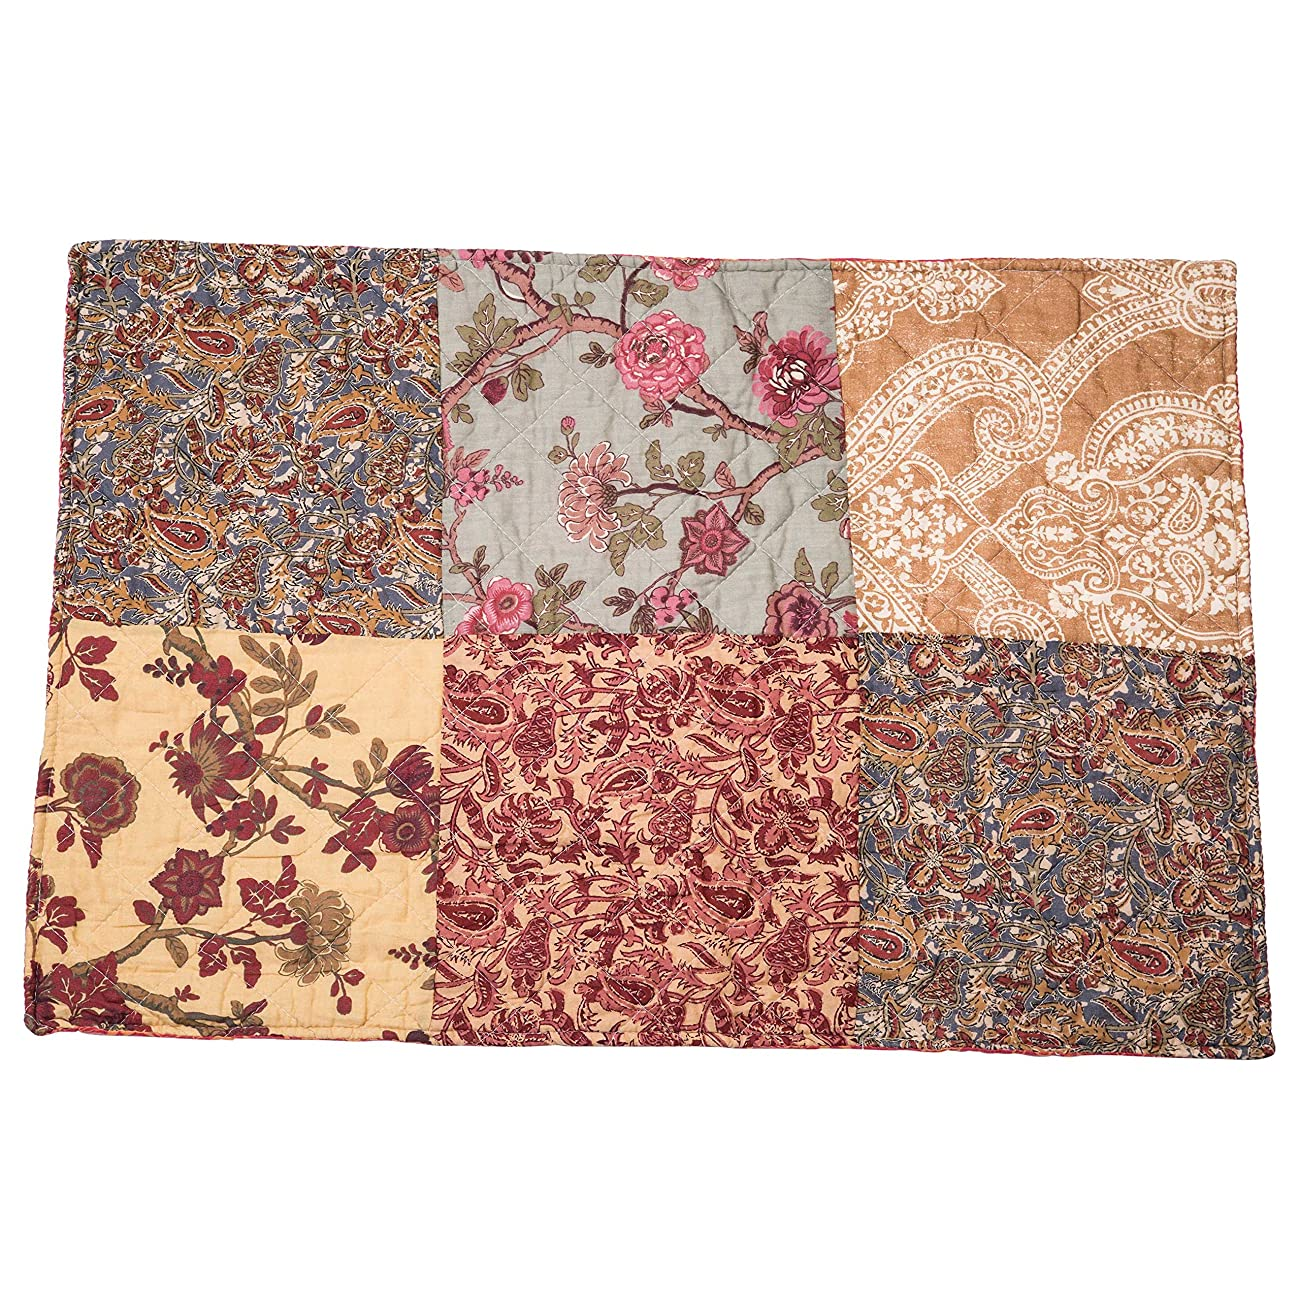 Luxury Retro Floral Stitching Cotton Patchwork Bedspread Sets Quilt Queen Size 3